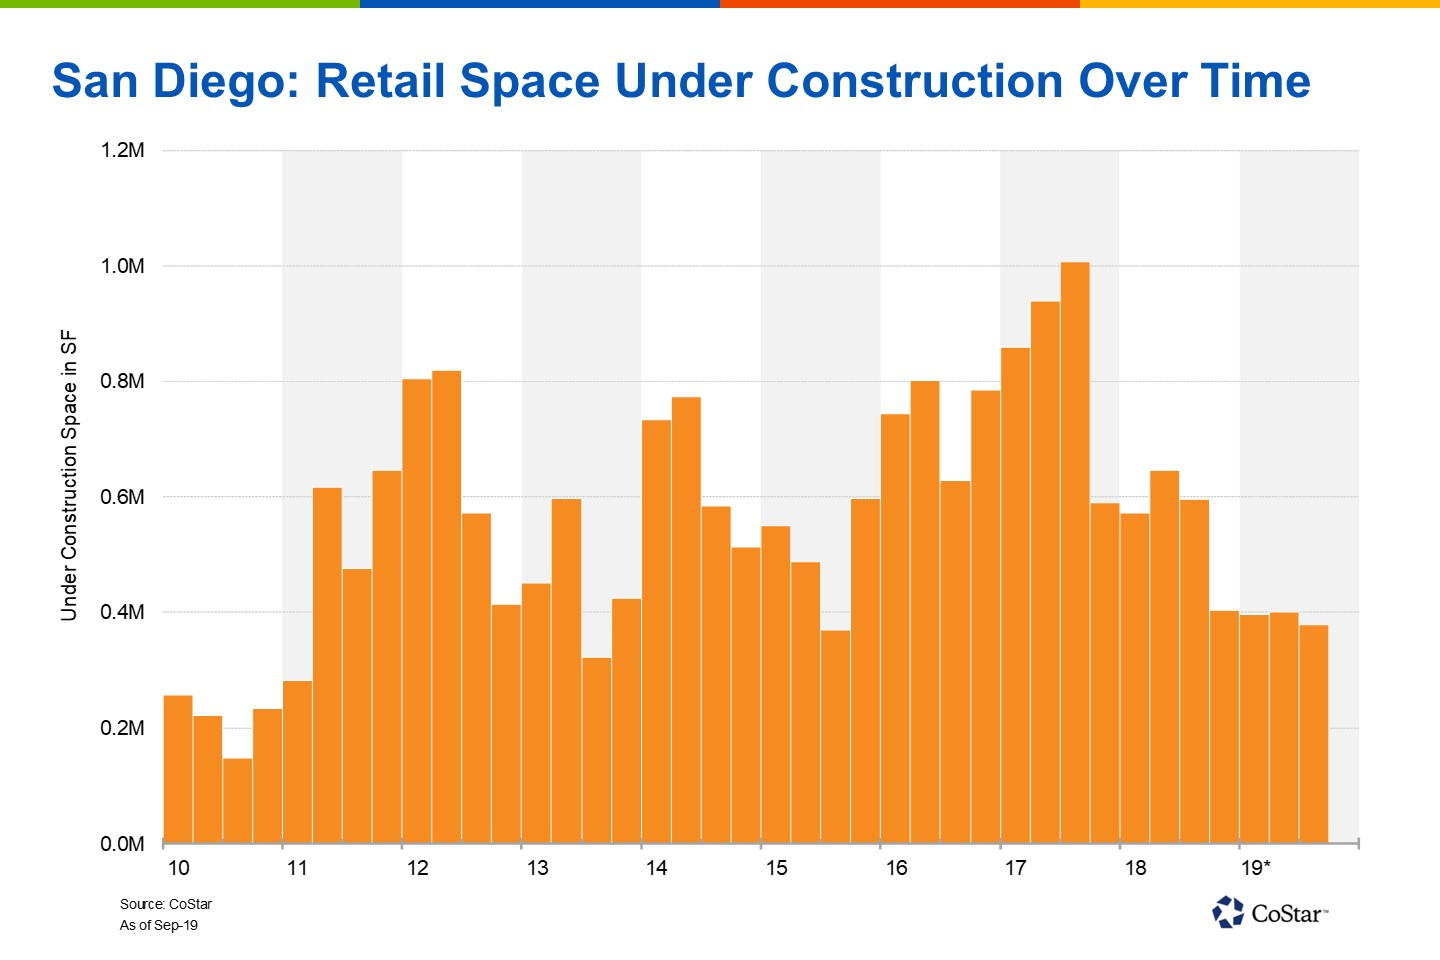 The past four quarters have averaged less than 400,000 square feet of retail space under construction.